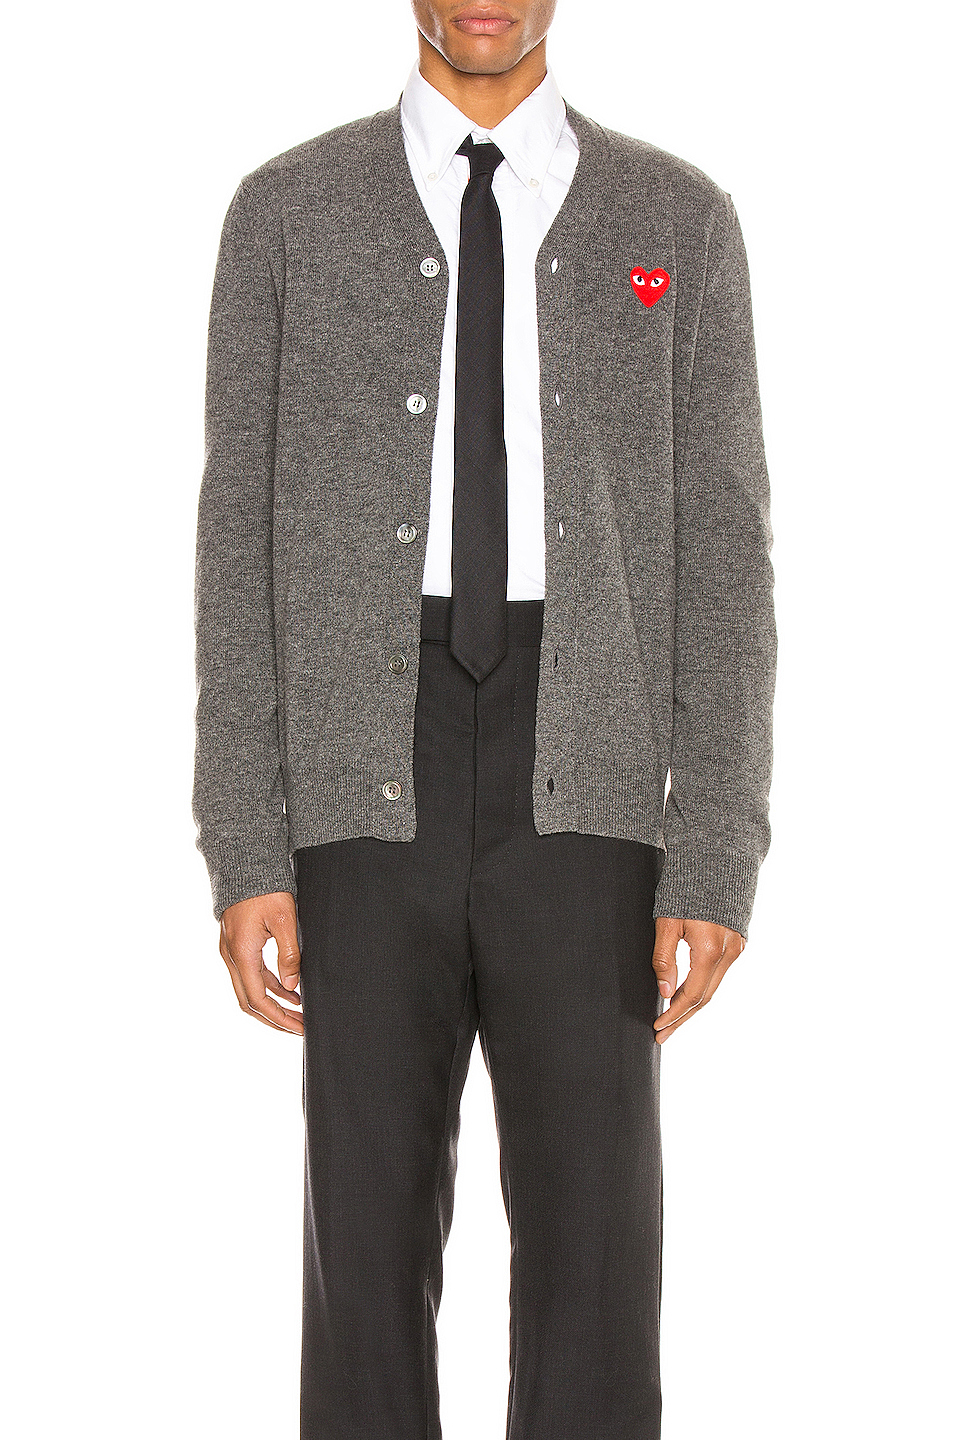 Comme Des Garcons PLAY Lambswool Cardigan with Red Emblem in Gray